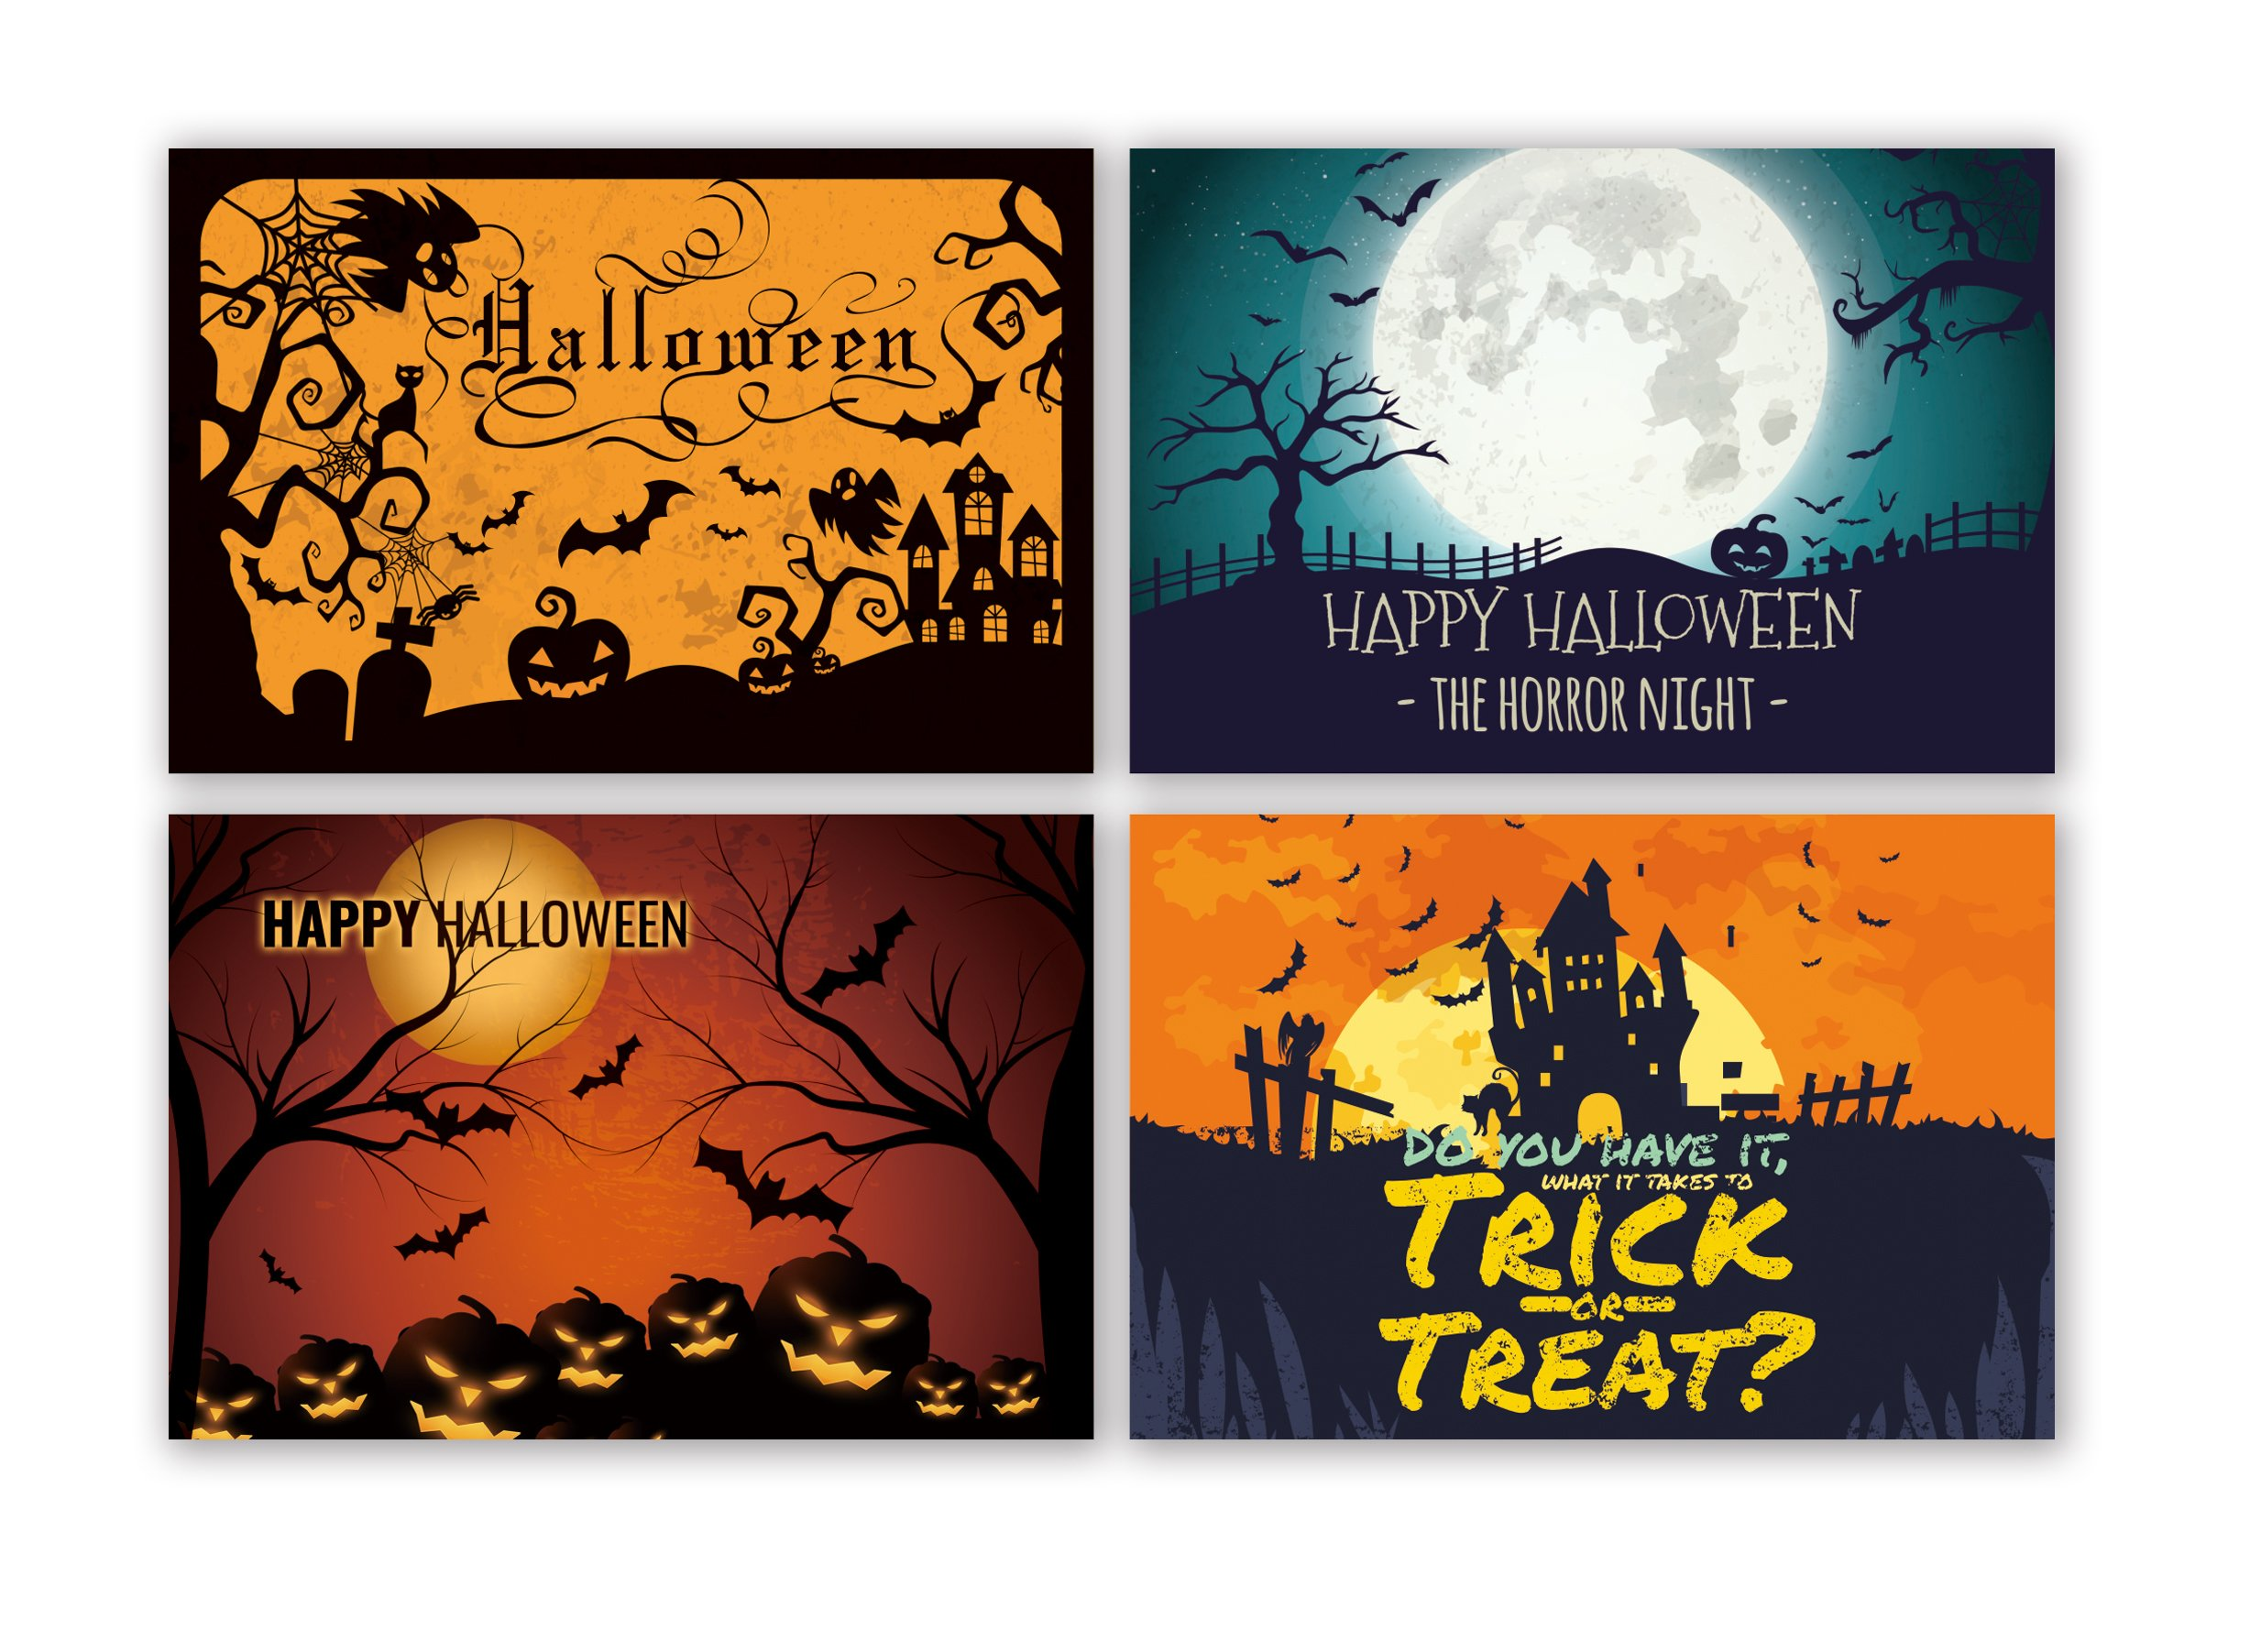 Amazon 24 halloween note cards trick or treat jack o lown design 4 design total 32 chalkboard note cards happy halloween blank greeting cards white envelopes kristyandbryce Images